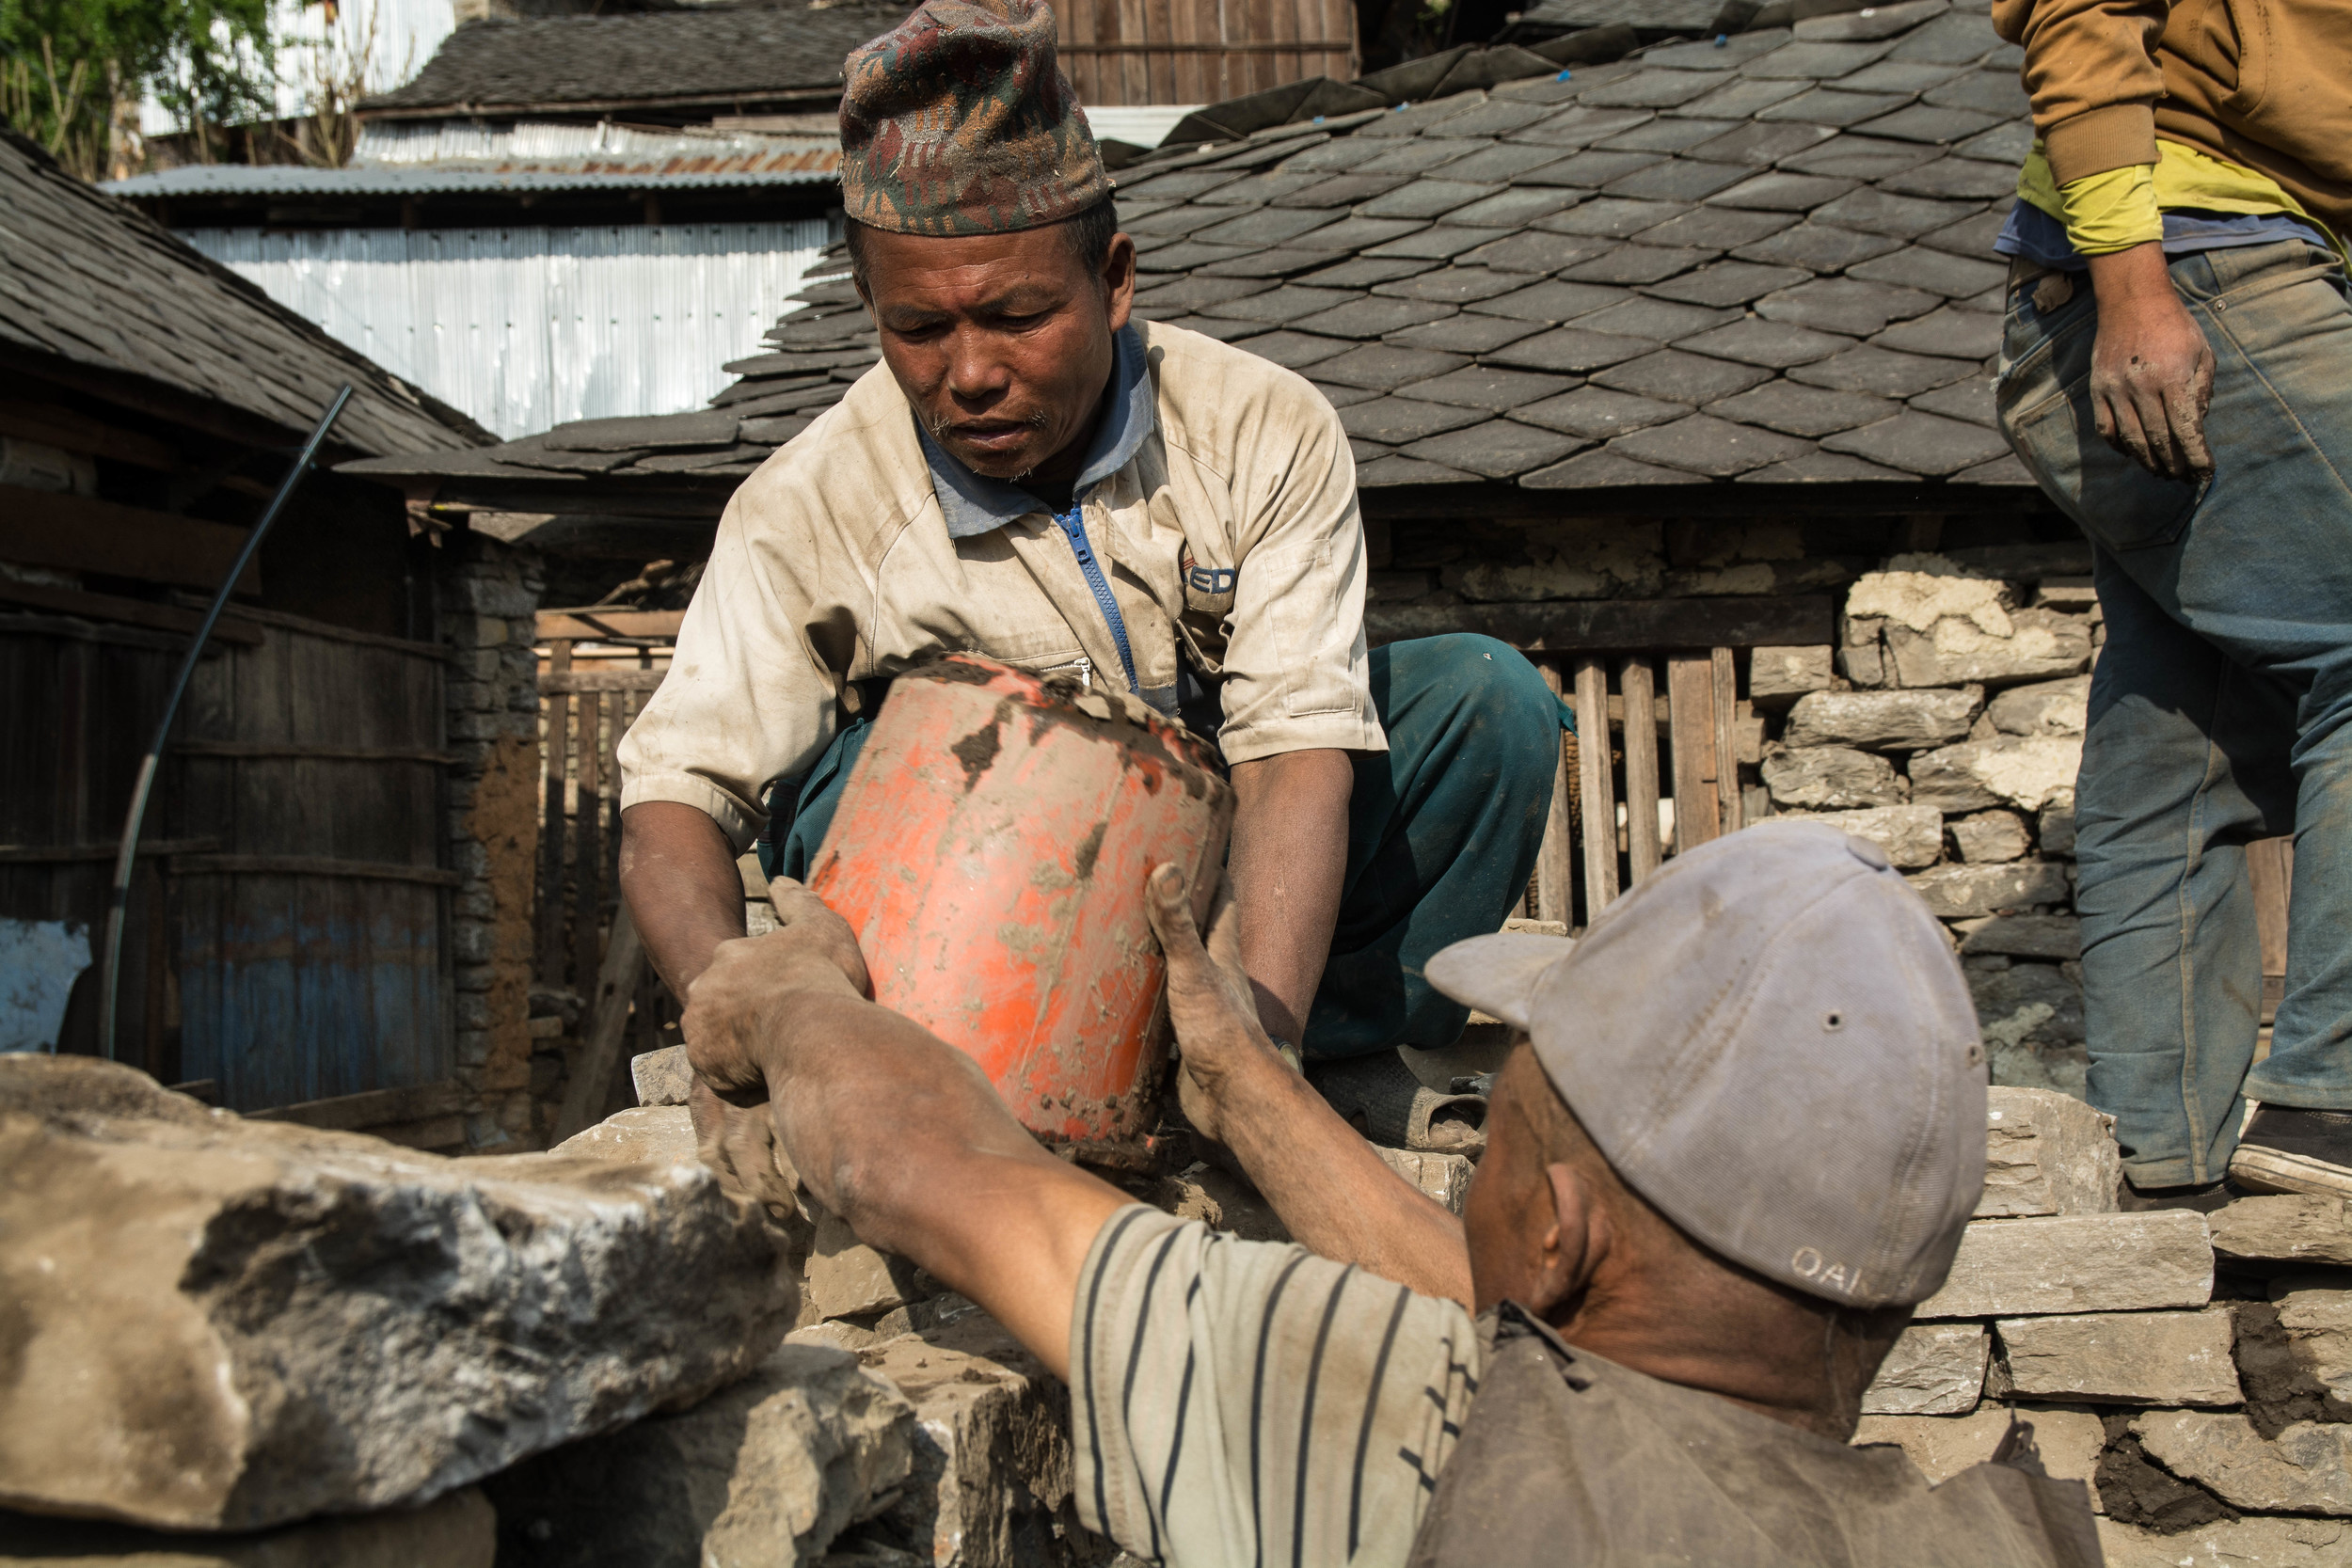 Shree Bahadur Tamang's neighbors apply mud to one of the stone walls of his house - photo by Mark Morrison.